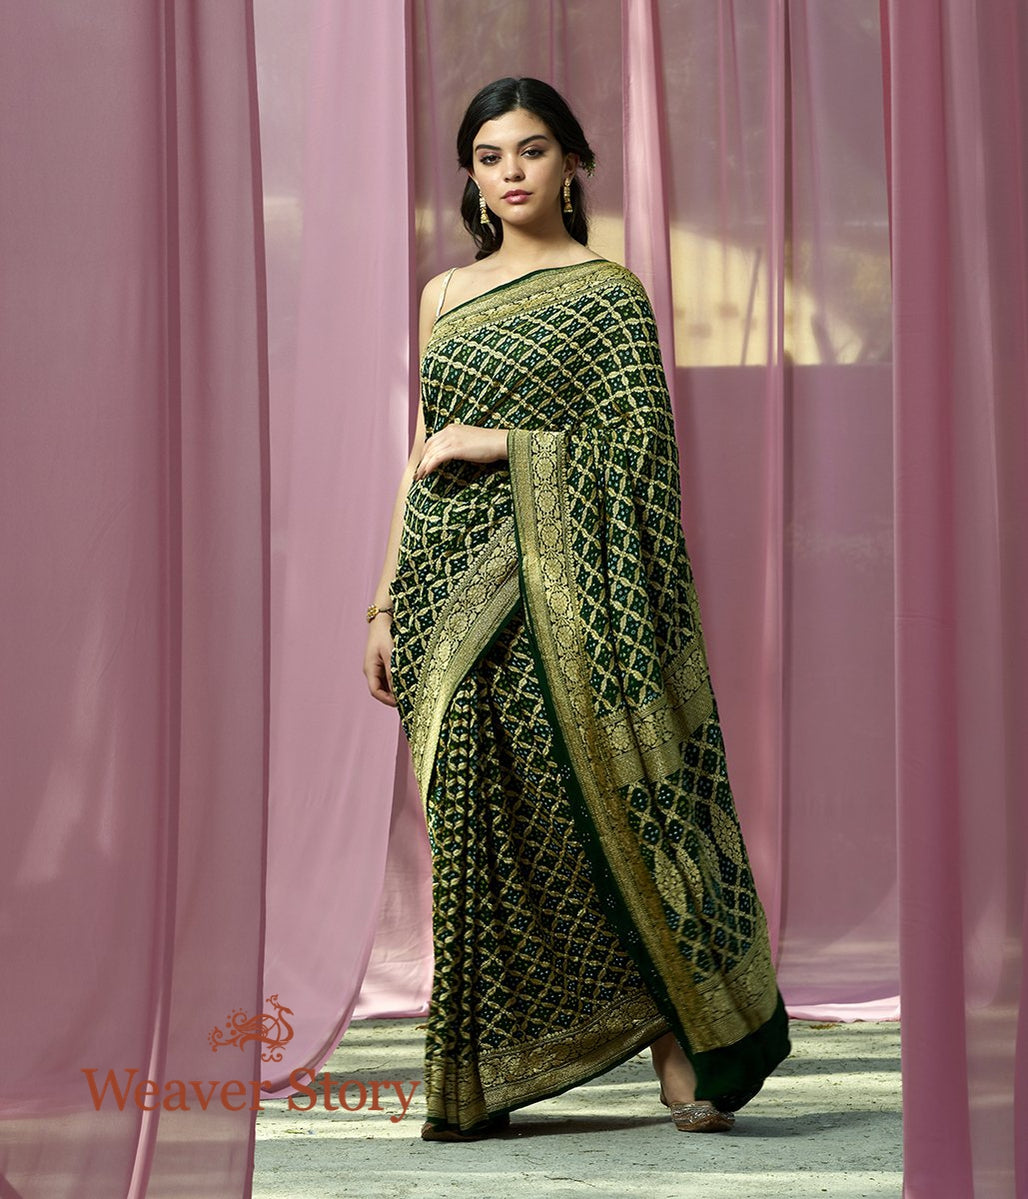 Handwoven Bottle Green Banarasi Bandhej Saree